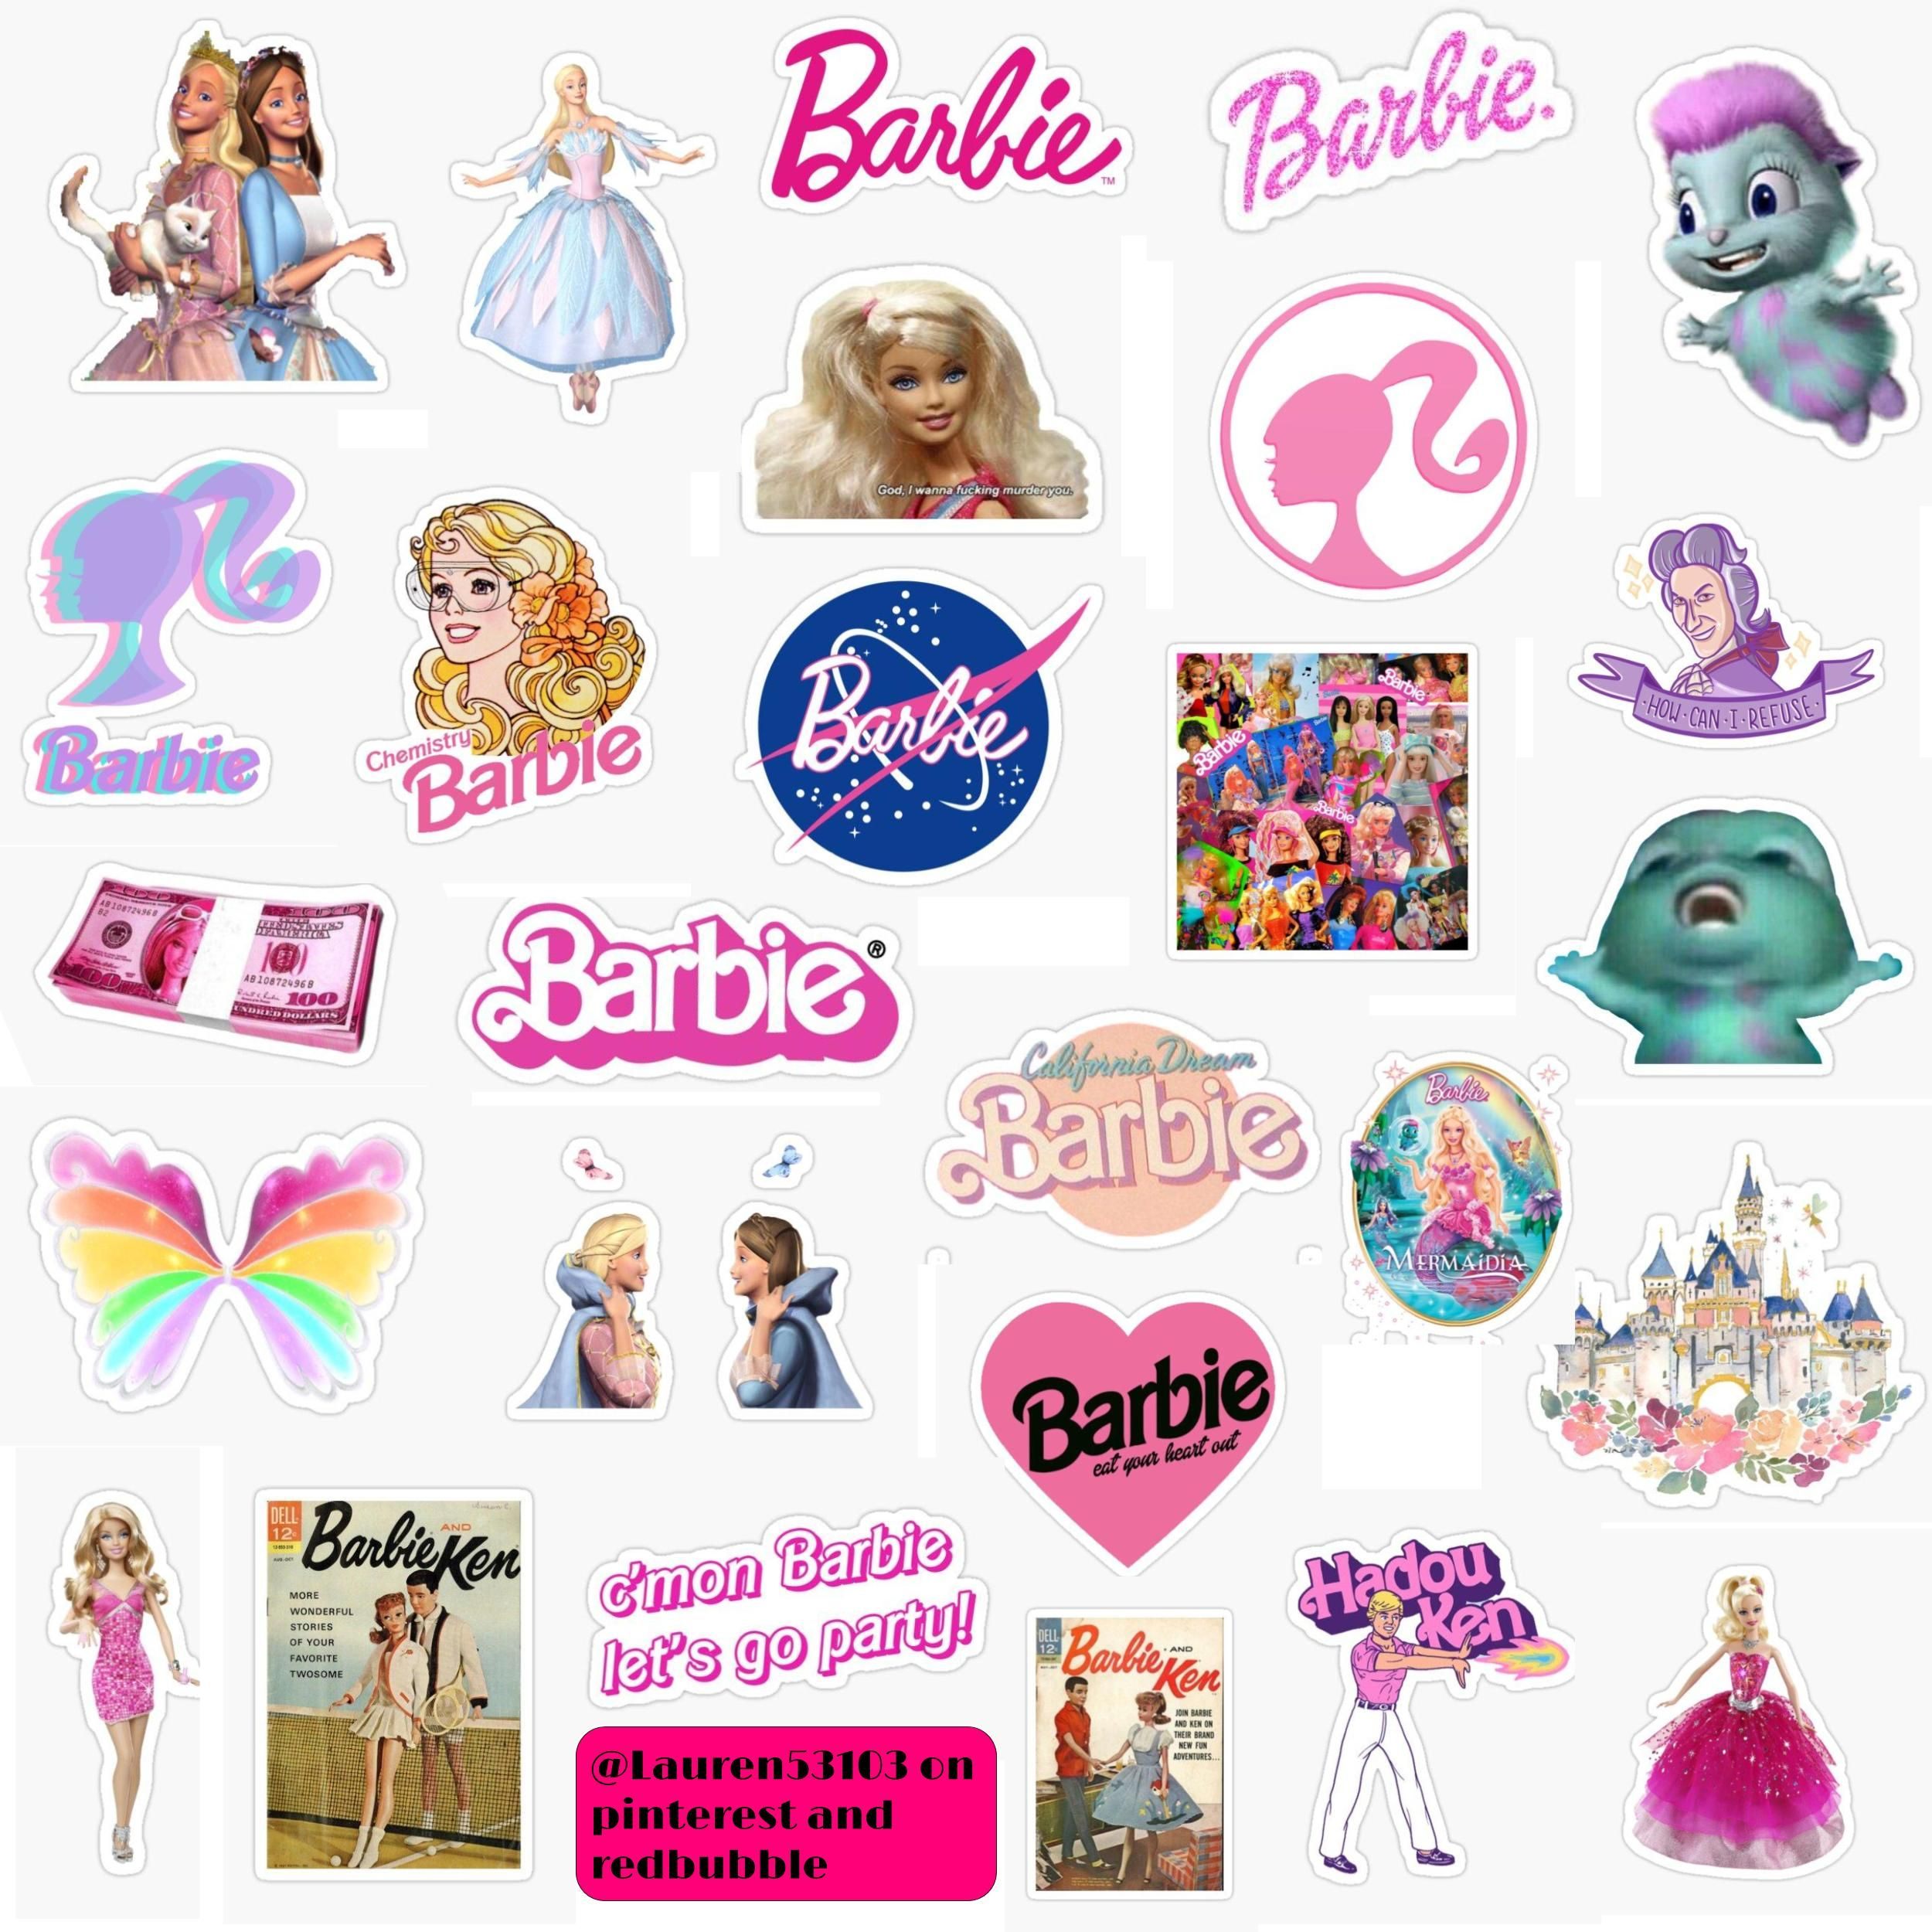 Barbie Stickers In 2020 Print Stickers Printable Stickers Girl Stickers